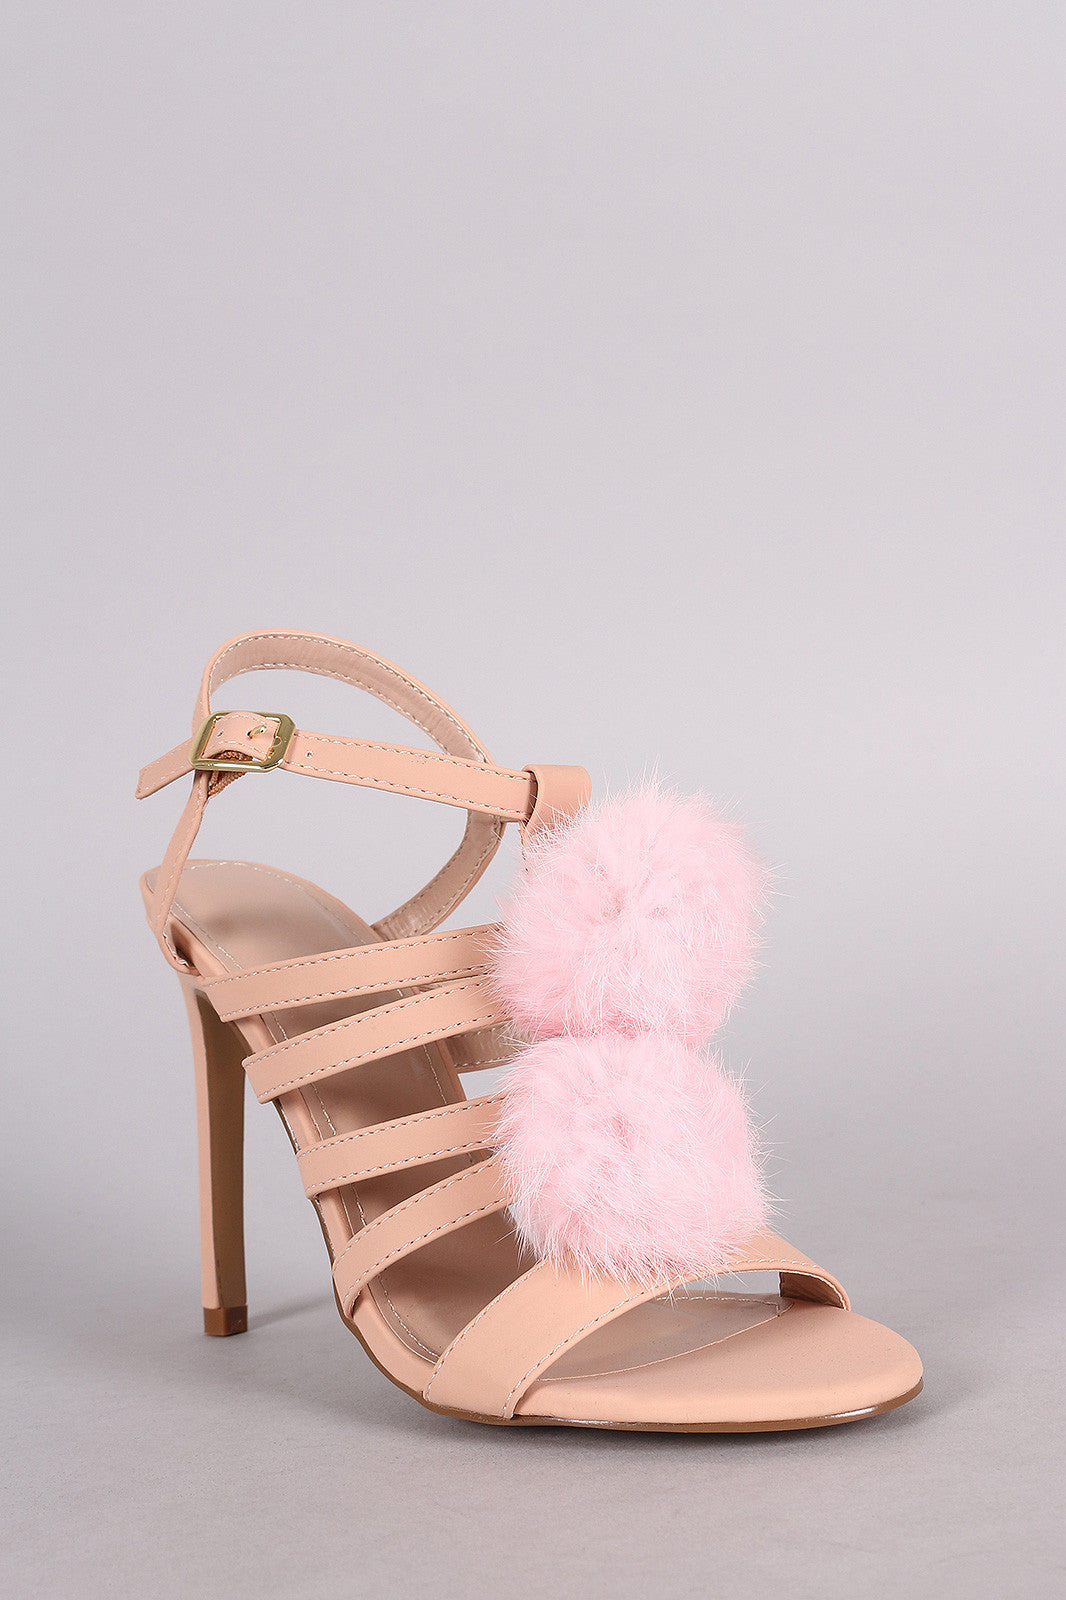 Shoe Republic LA Nubuck Strappy Pom Pom Stiletto Heel - Thick 'N' Curvy Shop - 2